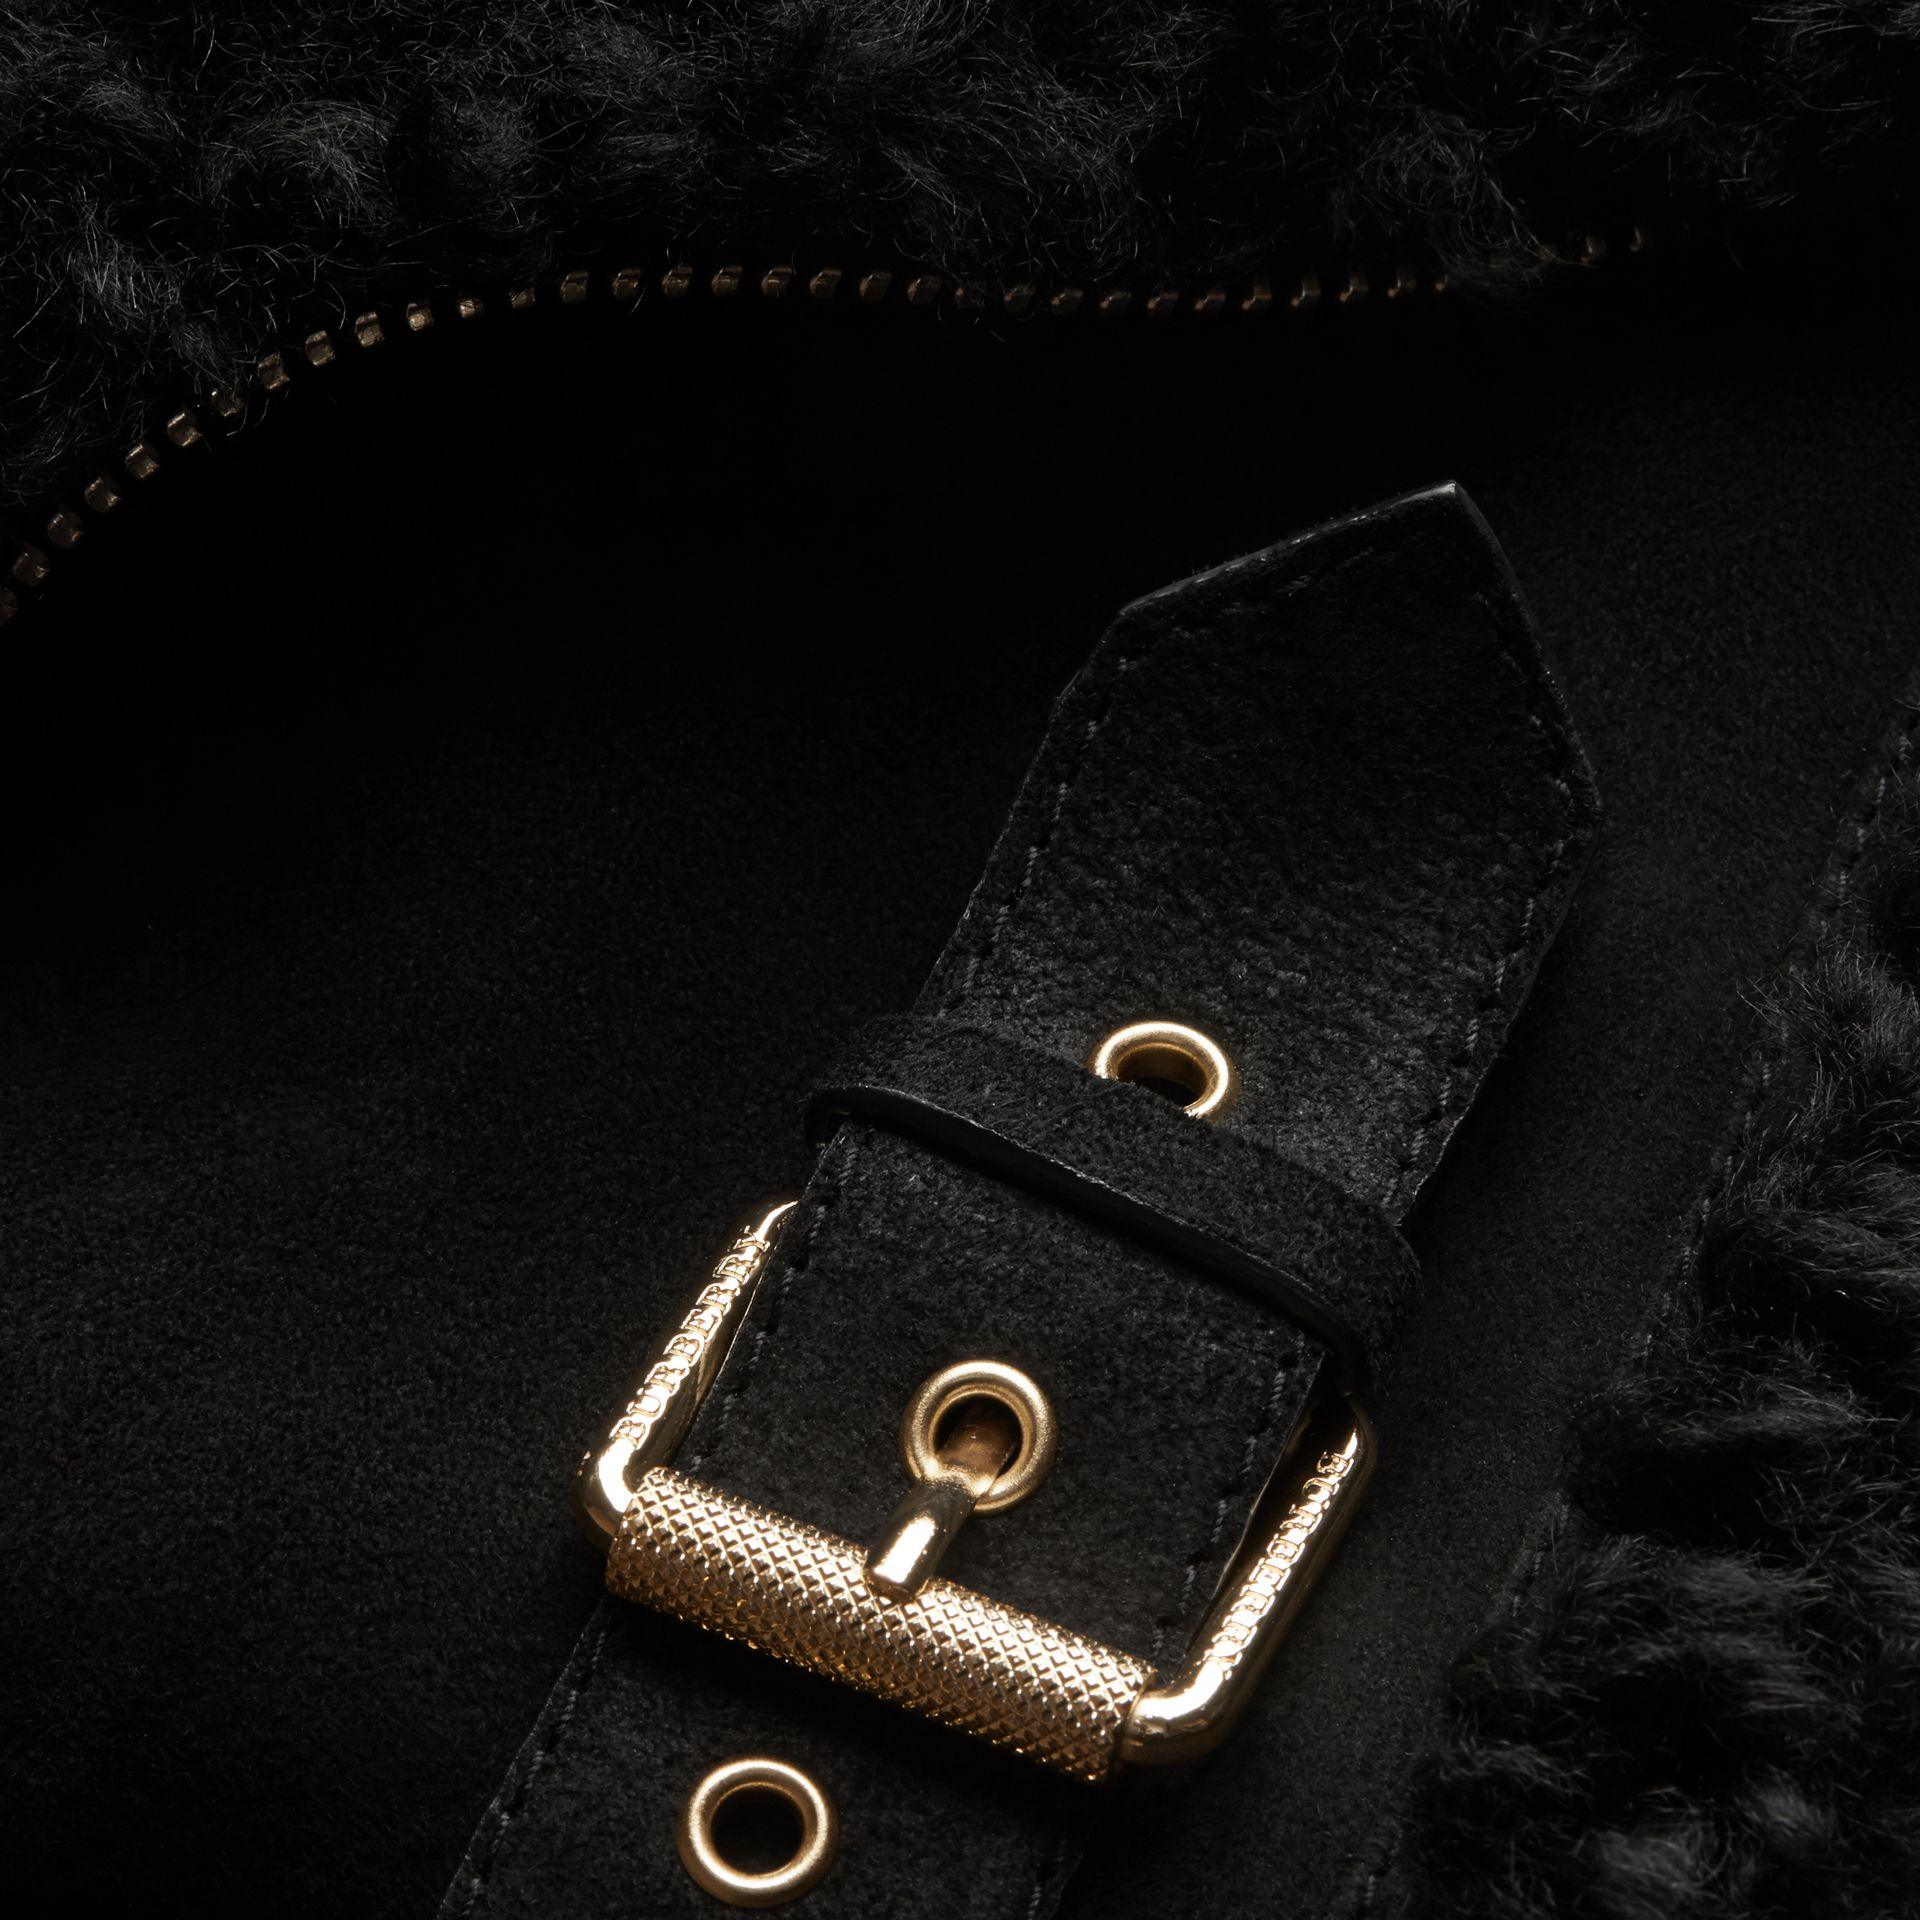 Black Shearling Biker Gilet Black - gallery image 2